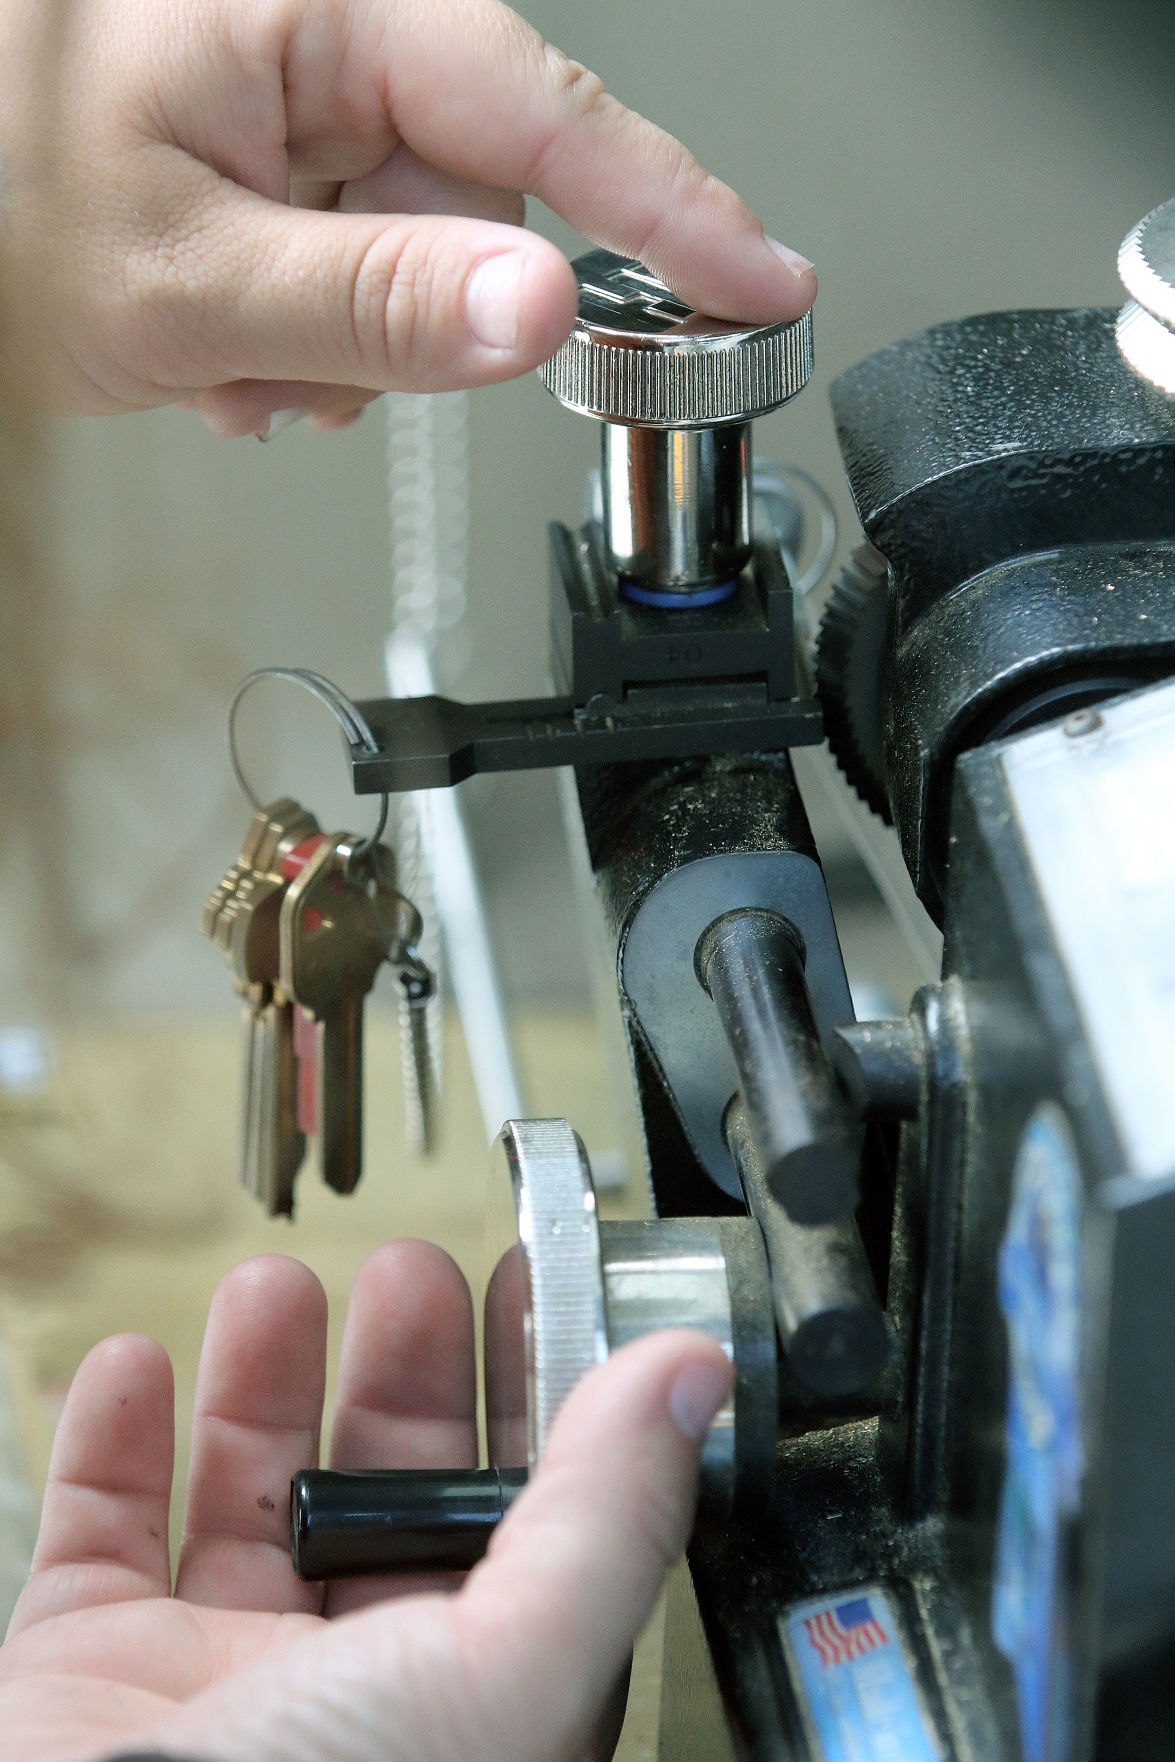 Key Locked In Ignition >> Woman locksmith making inroads in man's world | Business | victoriaadvocate.com